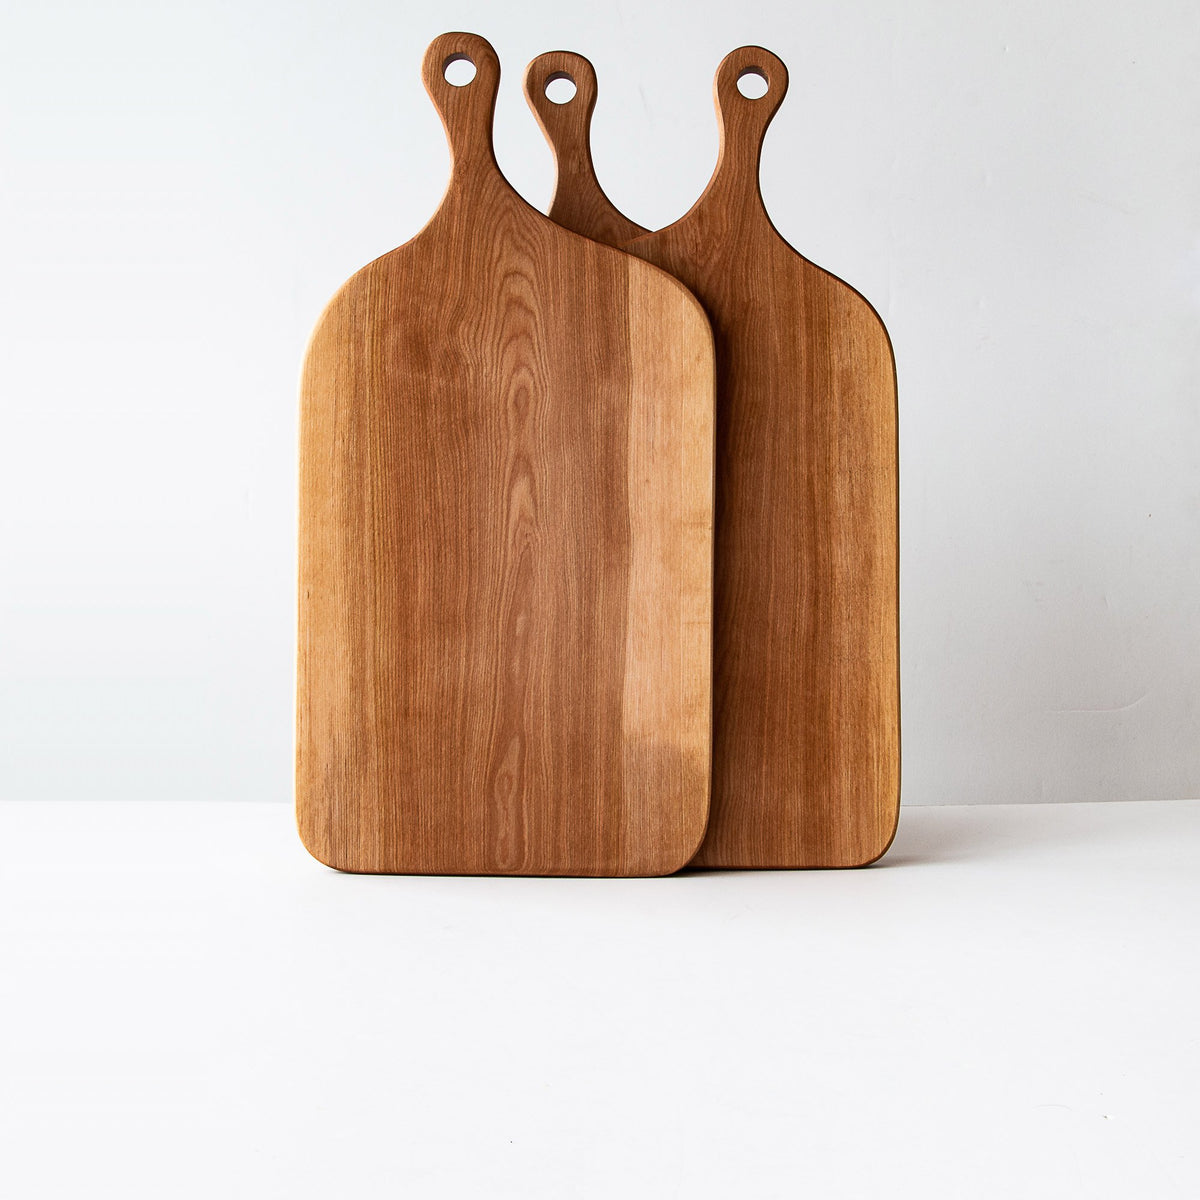 Muskoka N°5 - Three Large Wooden Service Board in Birch - Sold by Chic & Basta